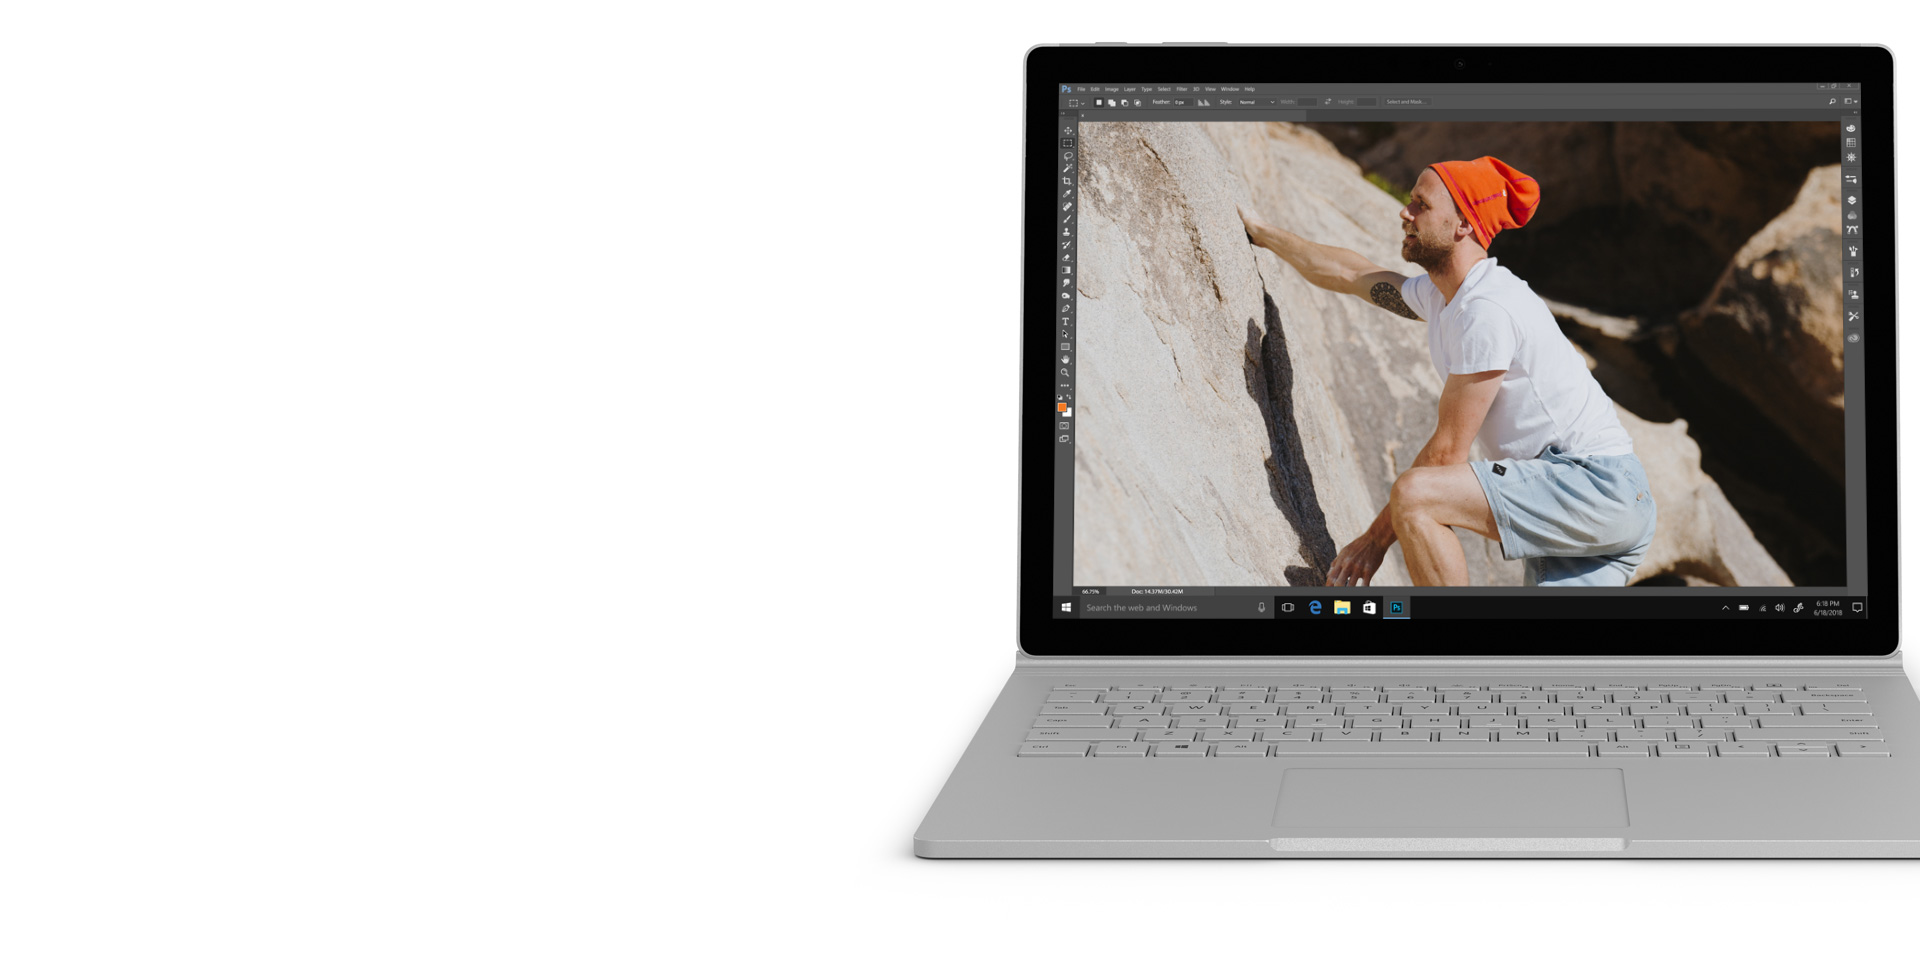 Adobe Photoshop no ecrã do Surface Book 2